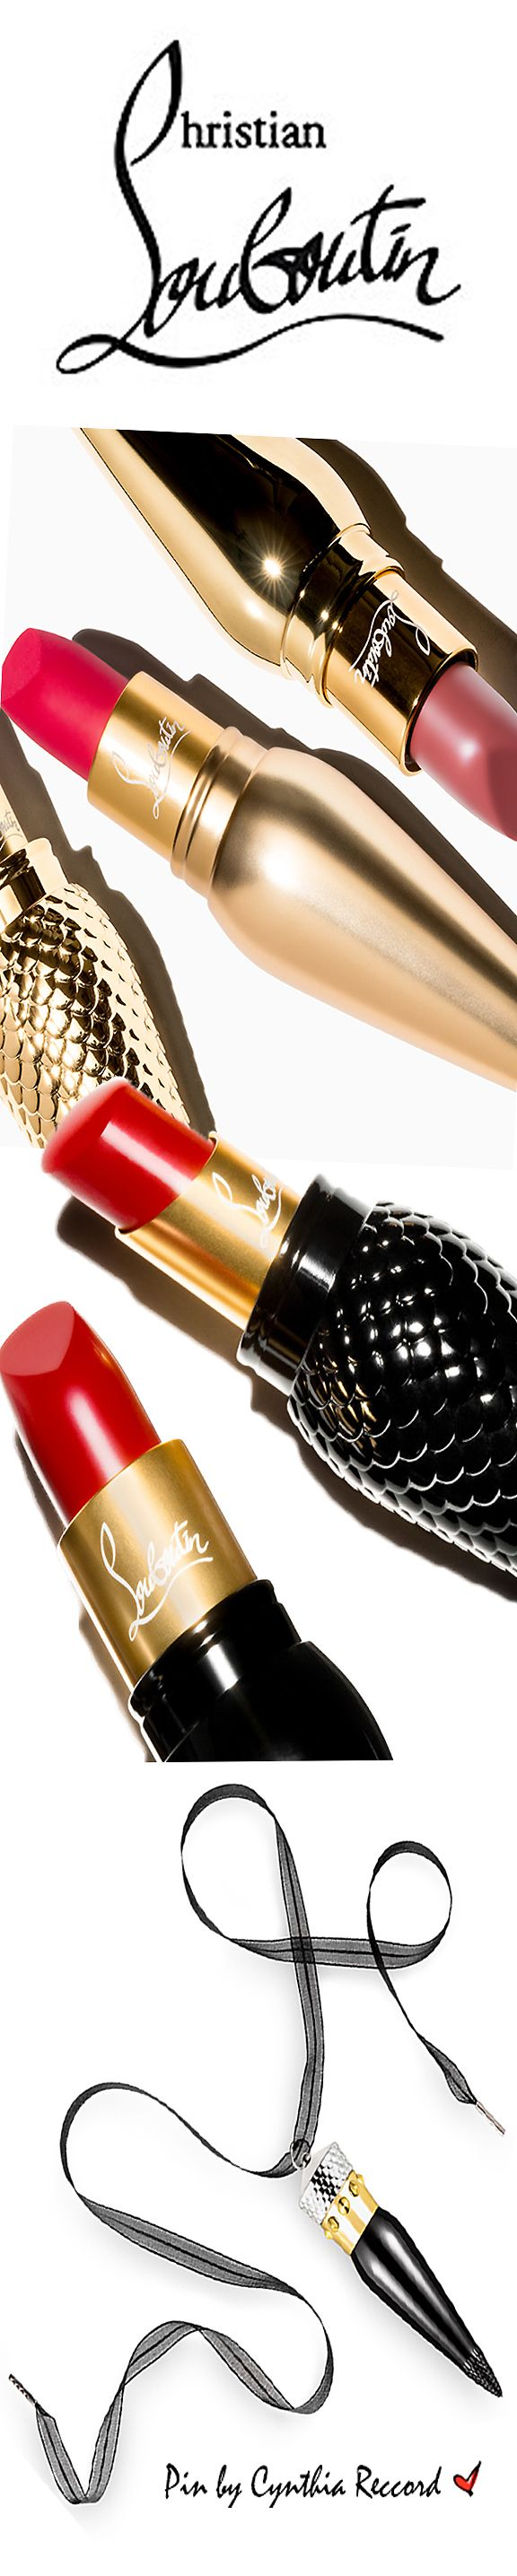 The lipsticks, hitting stores Sept 2015, will be available in 3 finishes ~ satin, matte and sheer, colors inspired by iconic Louboutin shoes and handbags. The line consists of 38 shades, each retailing for $90. Mr. Louboutin thinks of everything, he even designed the packaging to double as a necklace charm | cynthia reccord